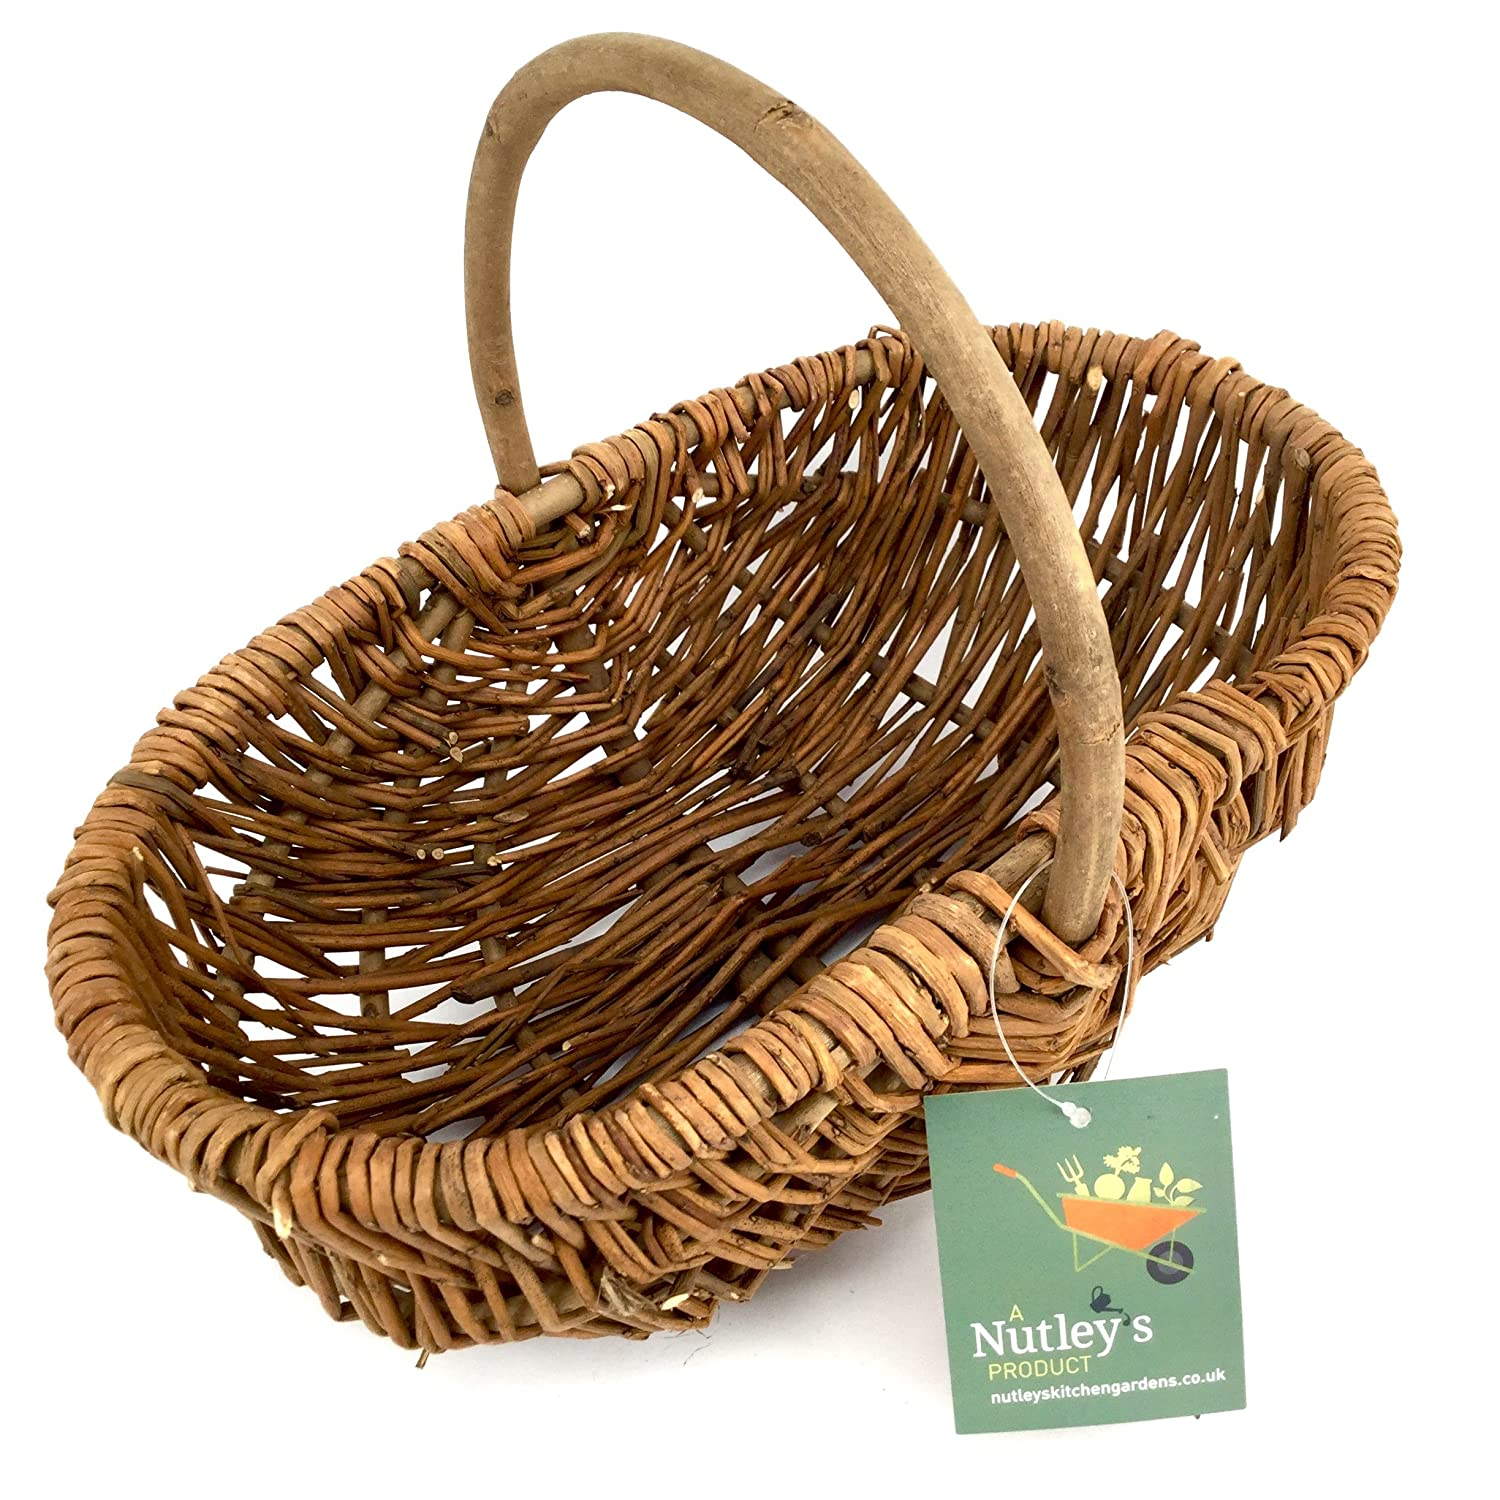 Amazon.com: Nutley\'s Small Rustic Willow Vegetable Trug Basket ...